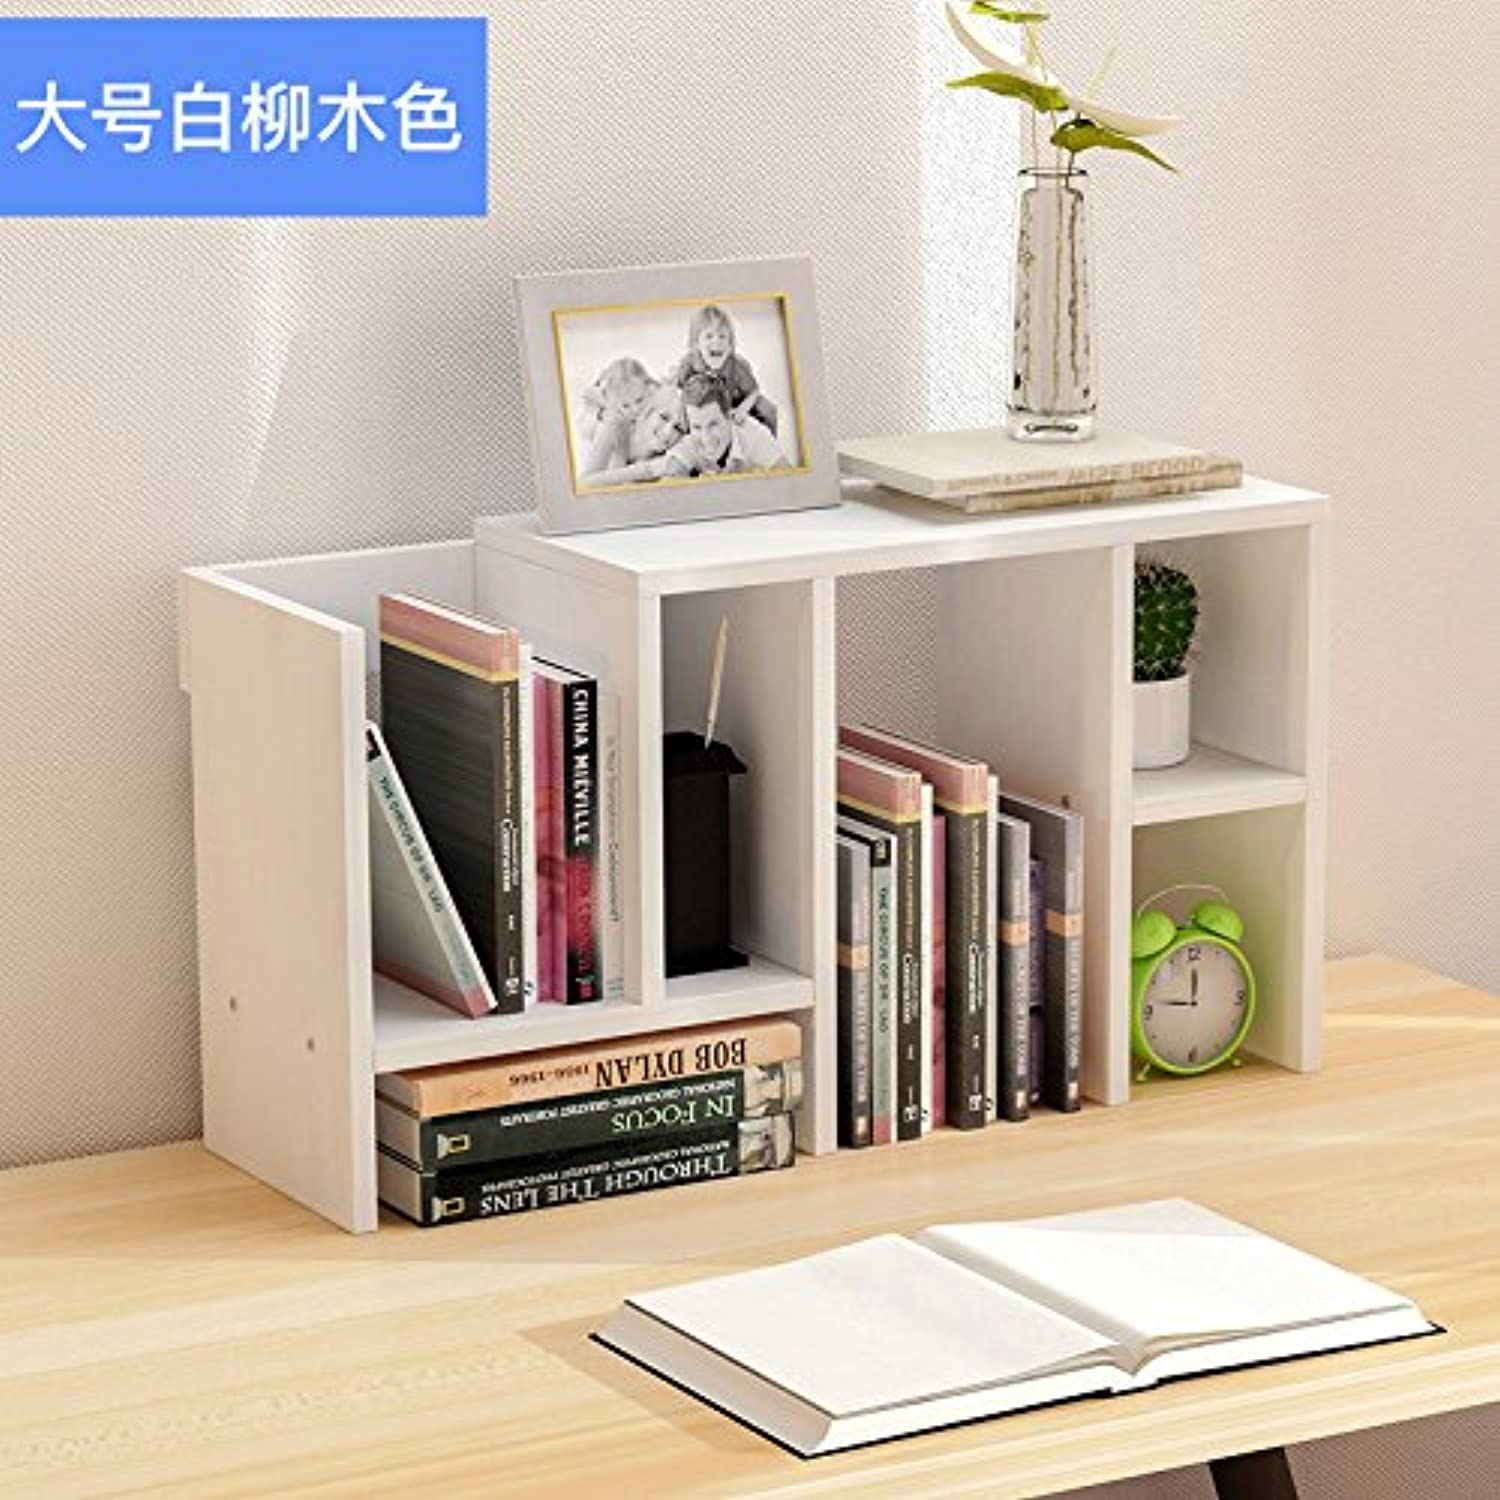 Creative bookshelves easy rack Small Office admitted rack scalable desktop bookcase , large white willow wood color